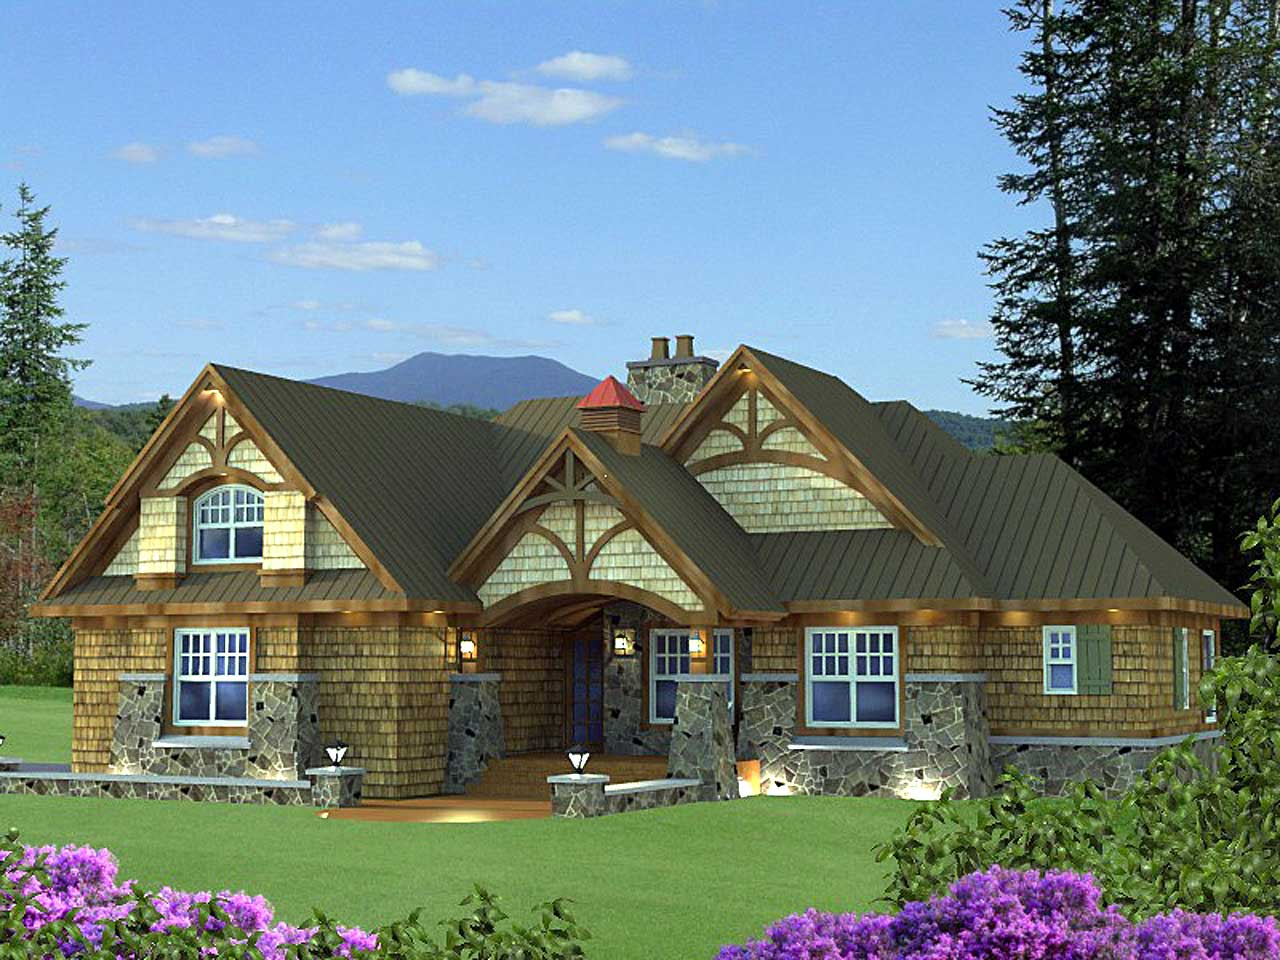 Country Style Home Design Plan: 38-509